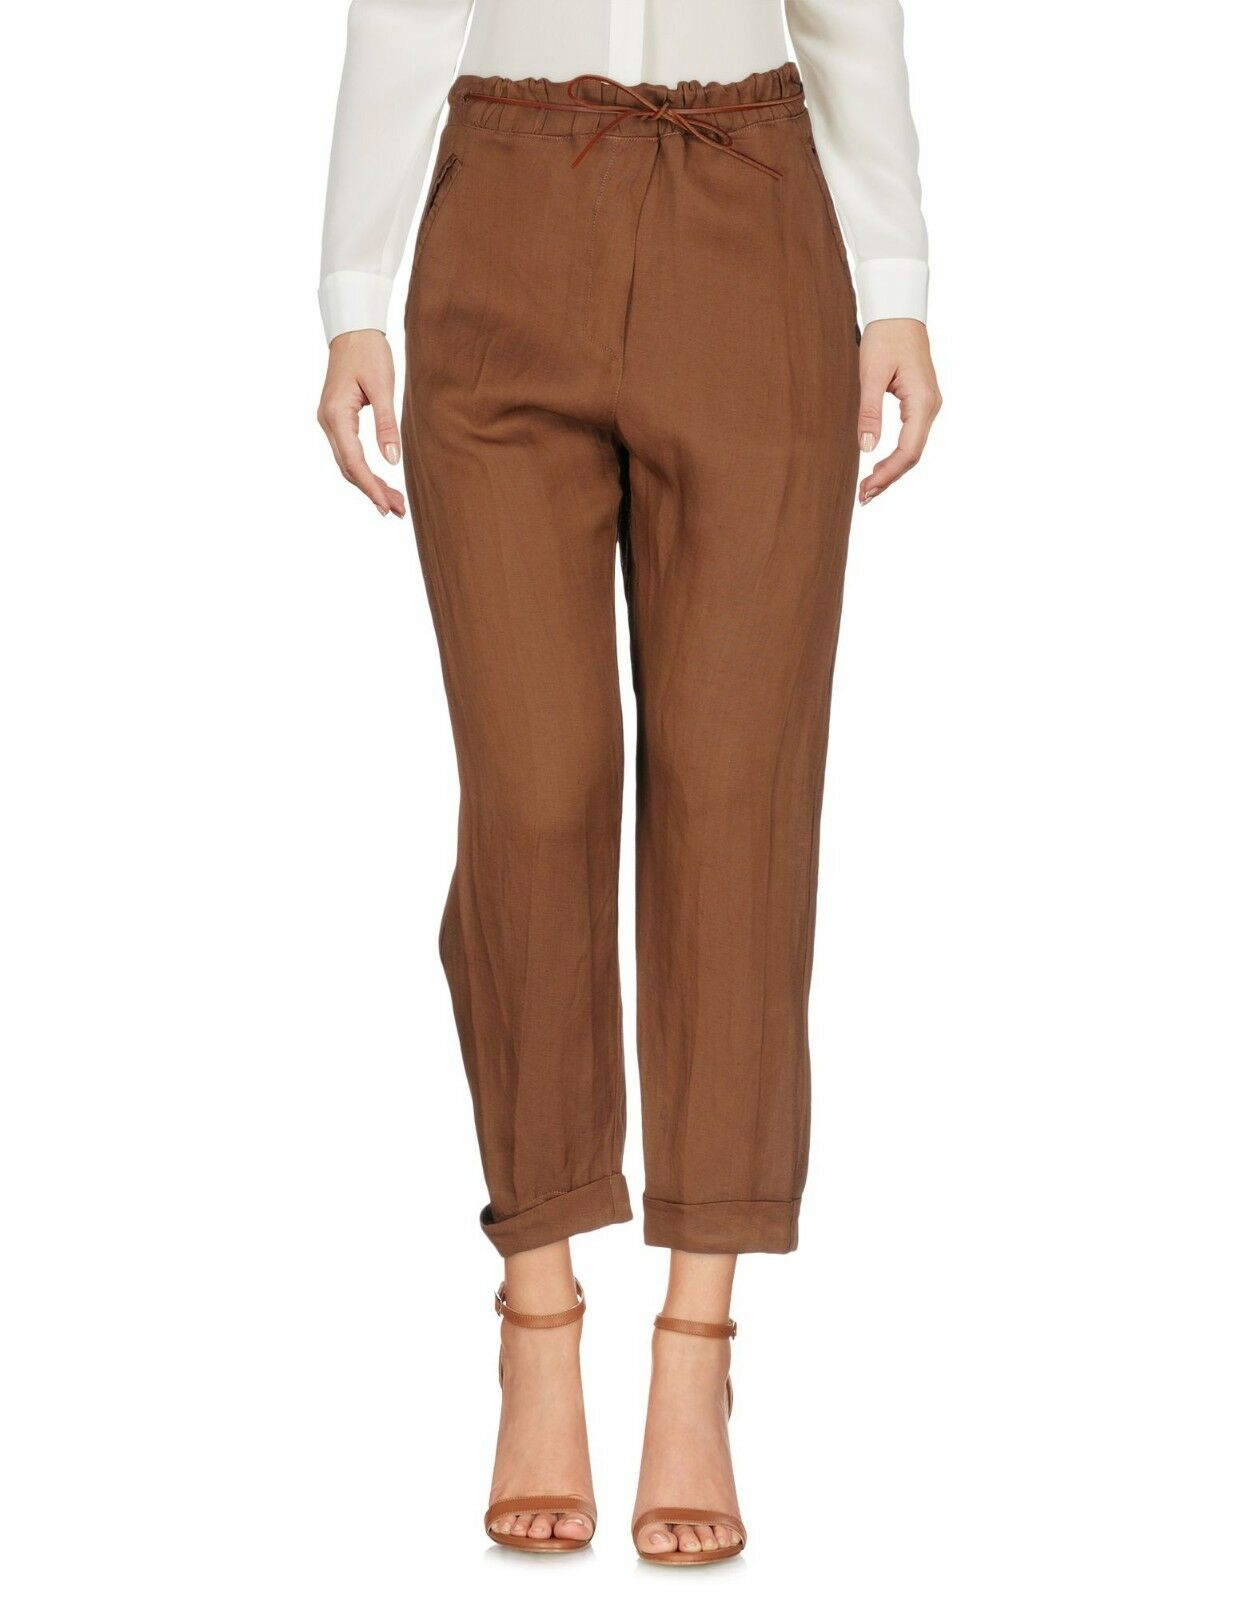 afbe7c0159 Pantaloni Donna TWIN-SET Simona Barbieri Made in H868 Tg XS d6ba3c ...